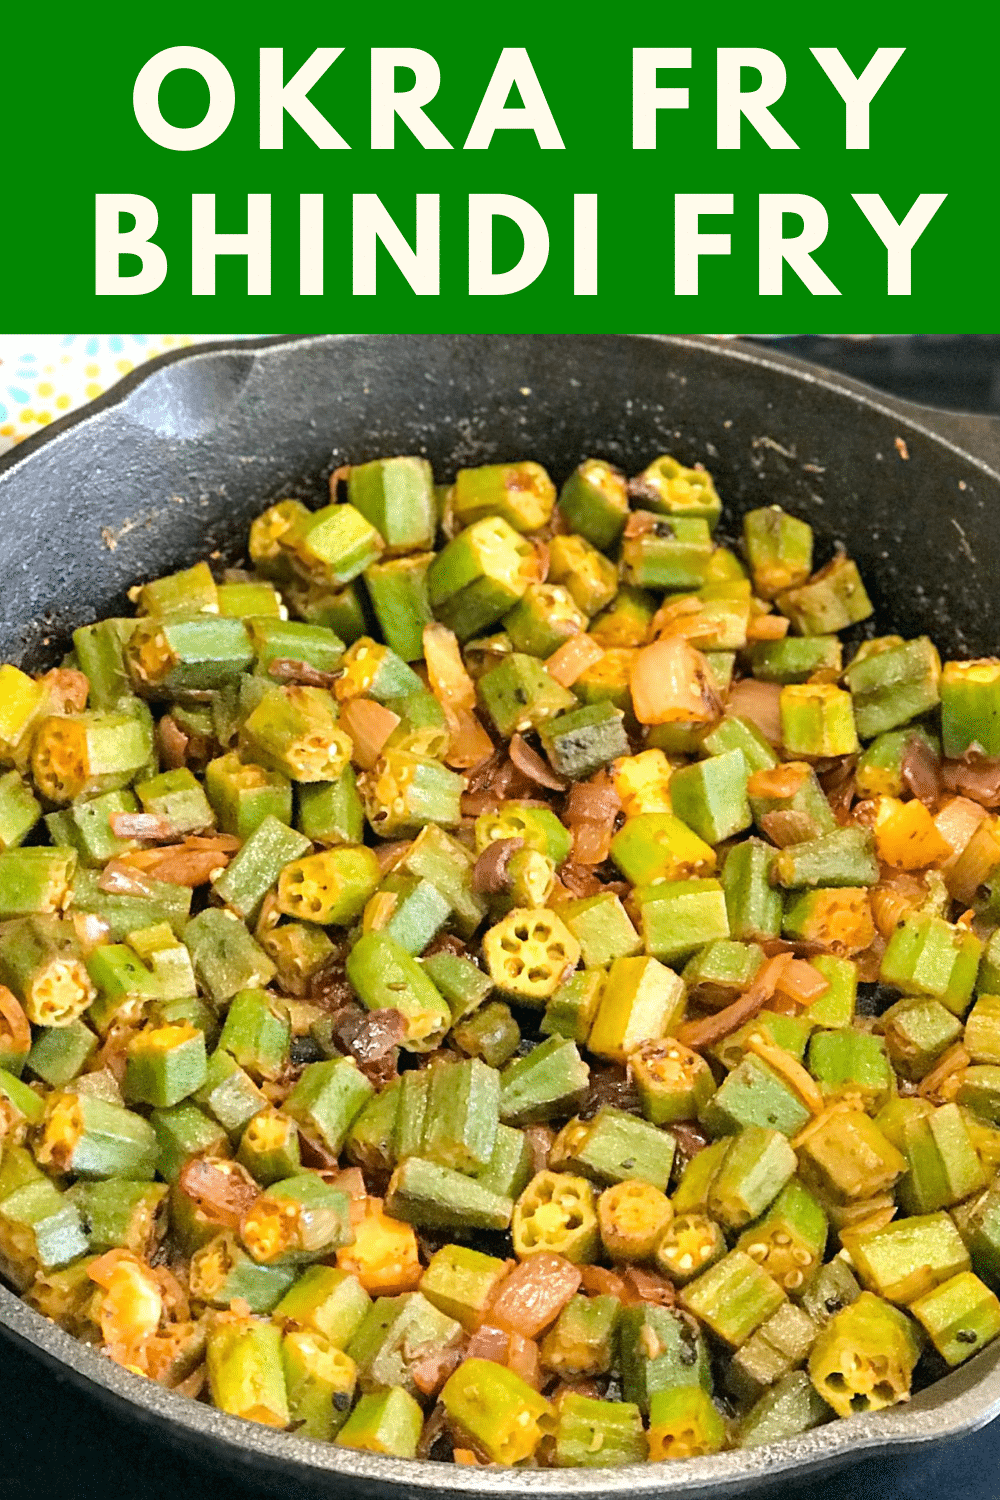 A pan filled with food, with Okra and Spice